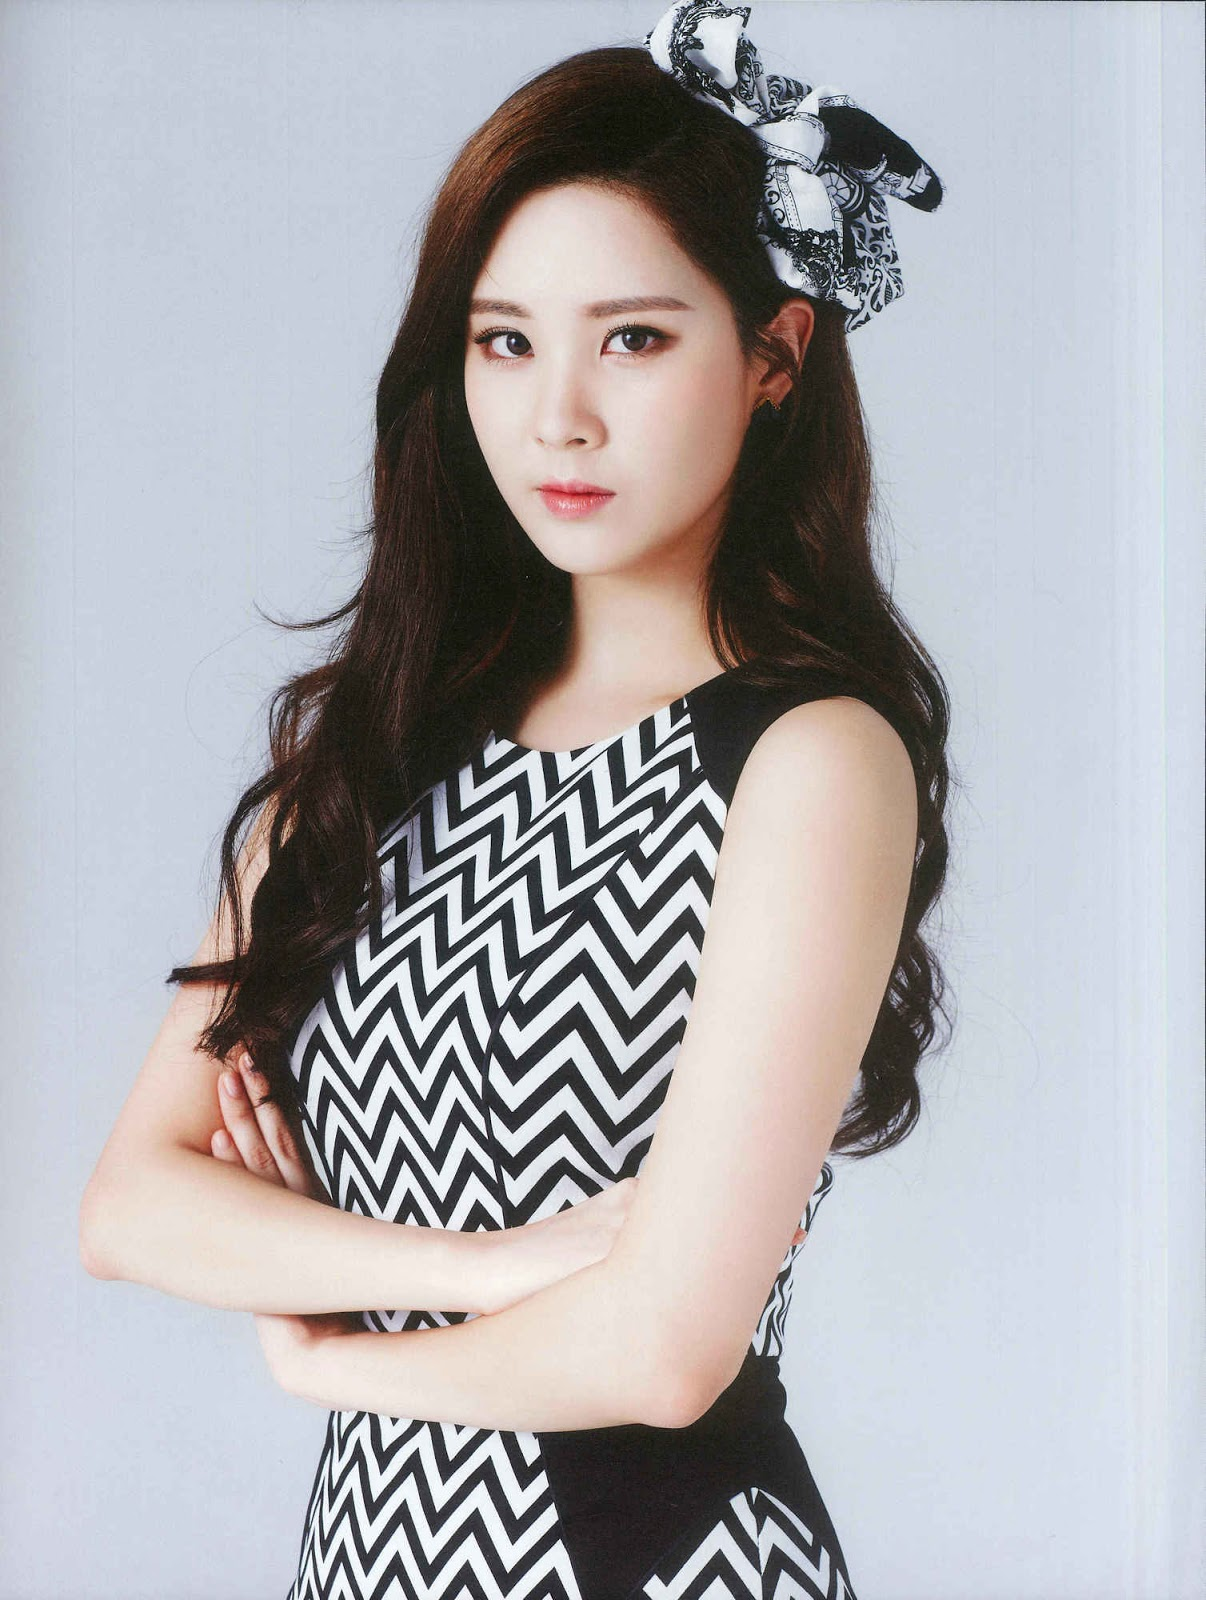 Snsd Seohyun Airport Fashion: Check Out The Scans From SNSD's 'Phantasia' Goods